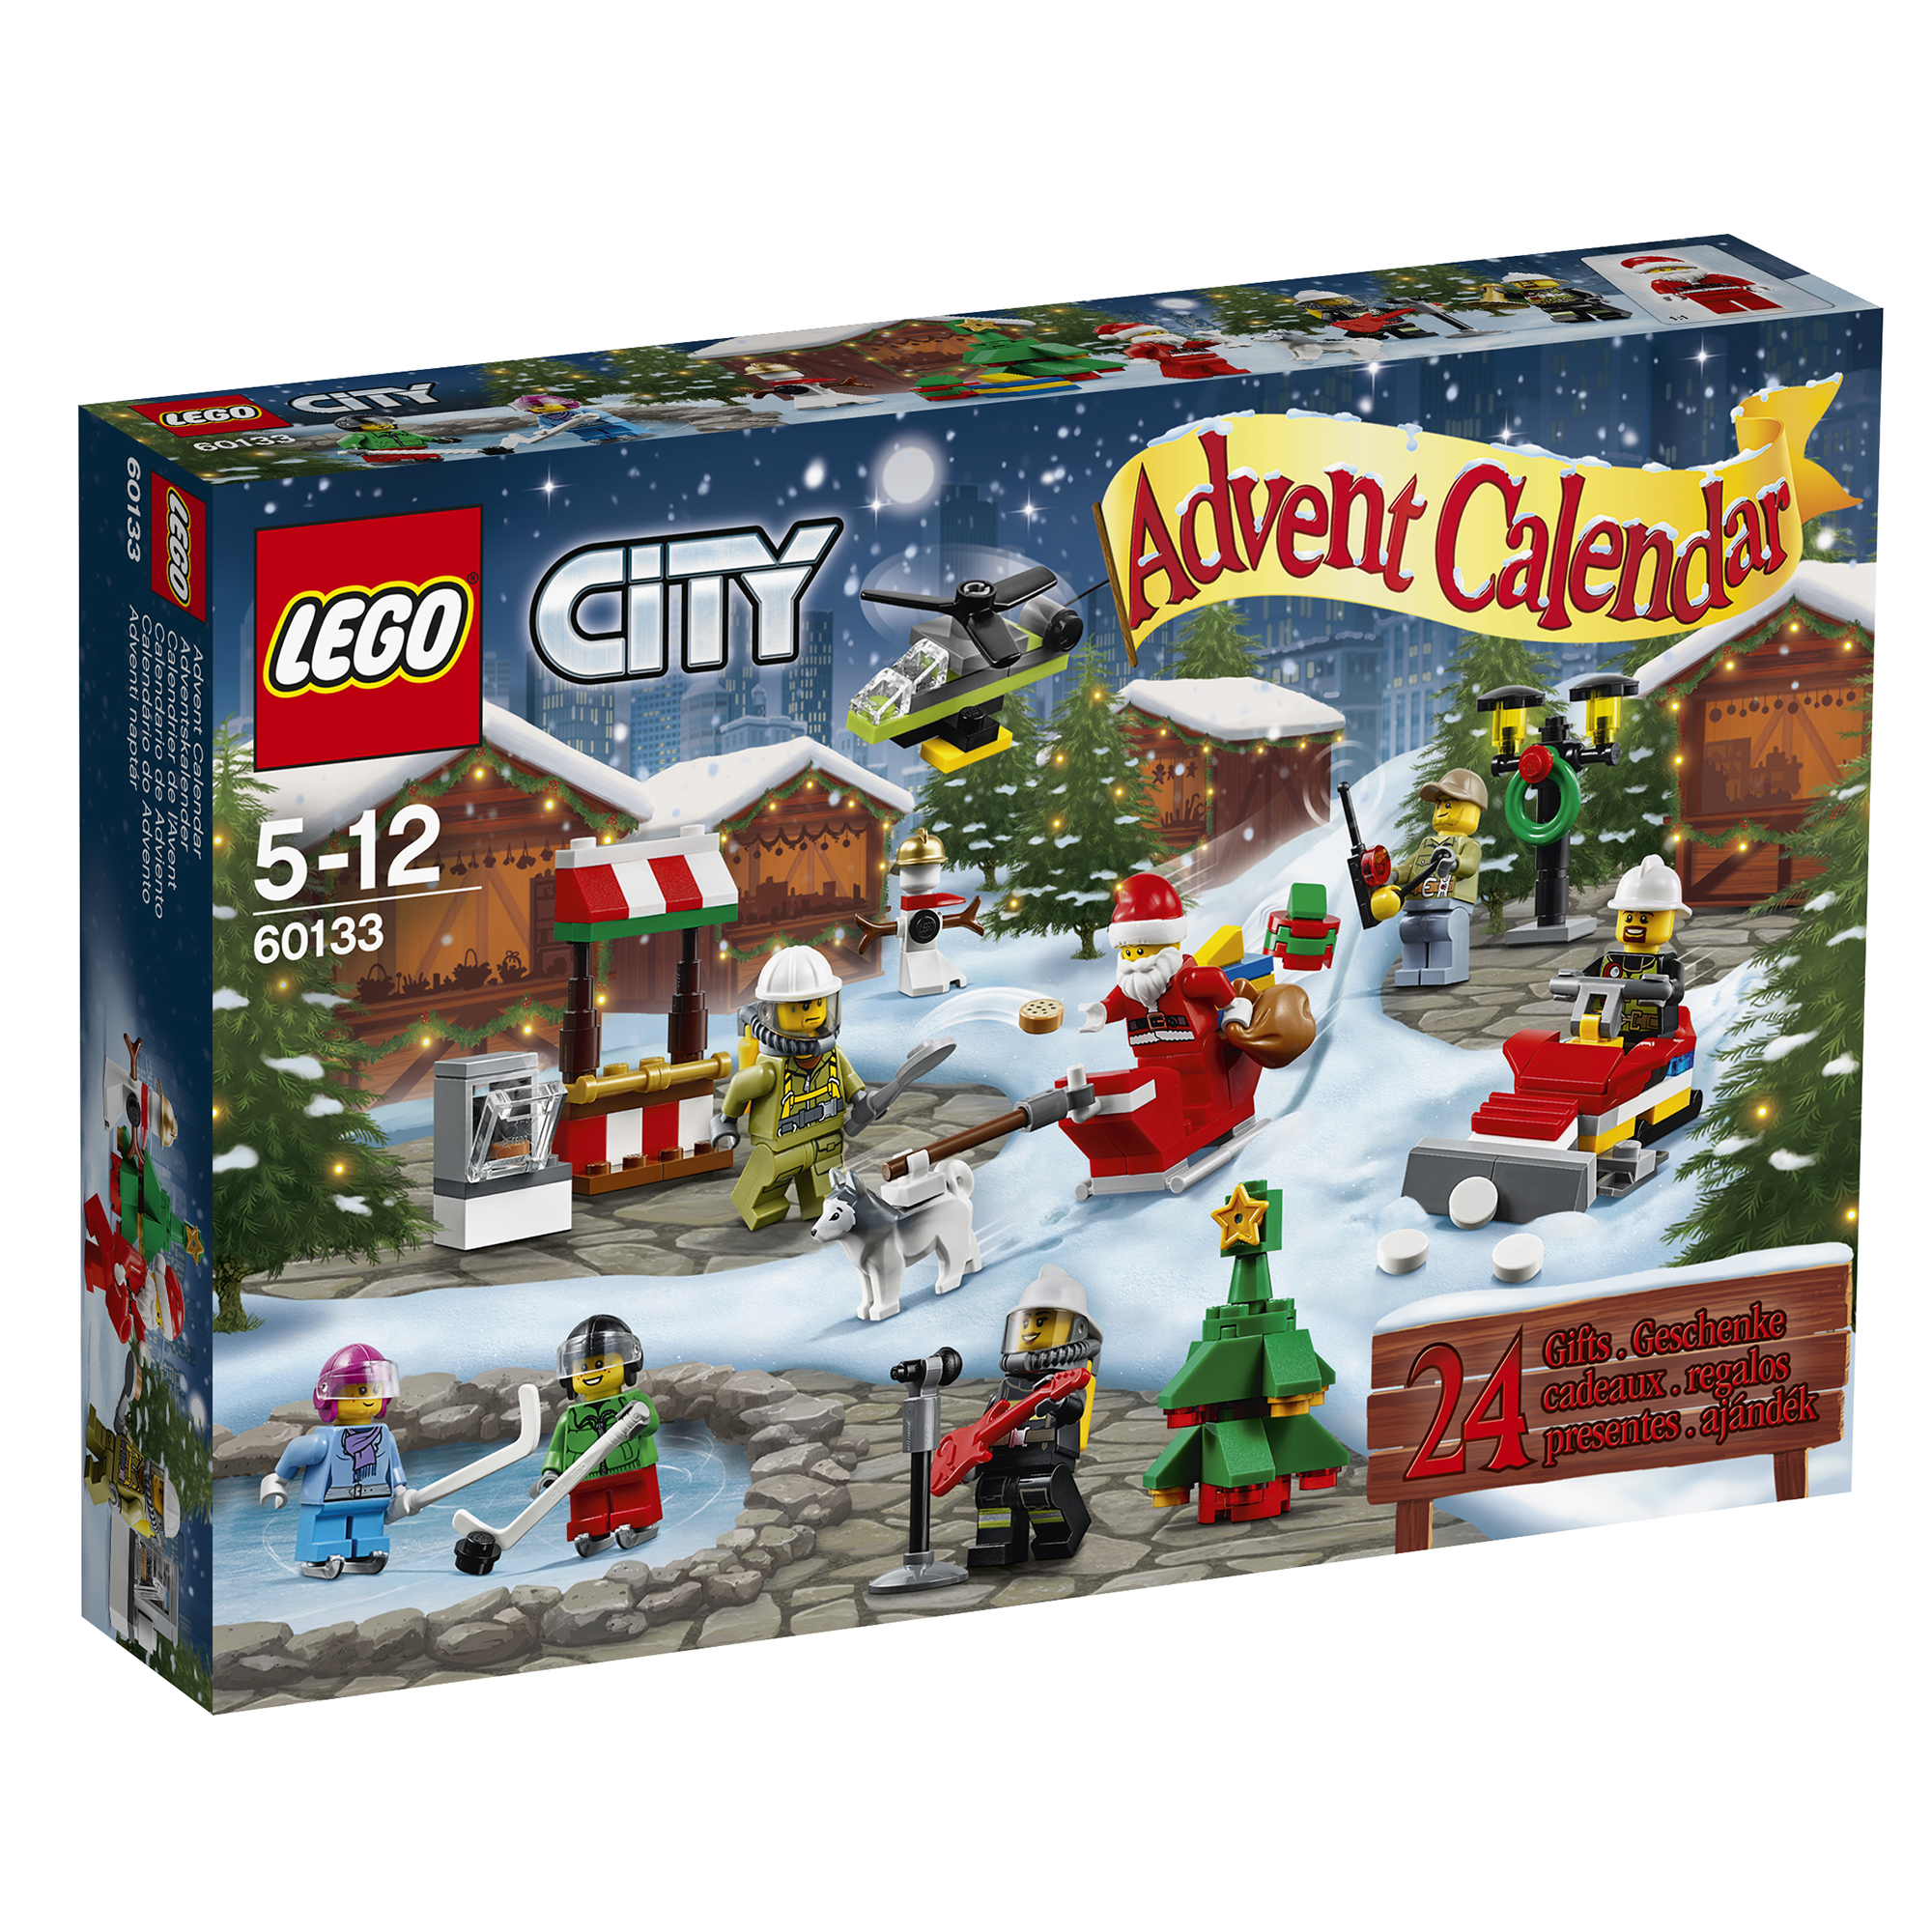 Christmas Number One Toy For Boys : New lego city town advent calendar ages for